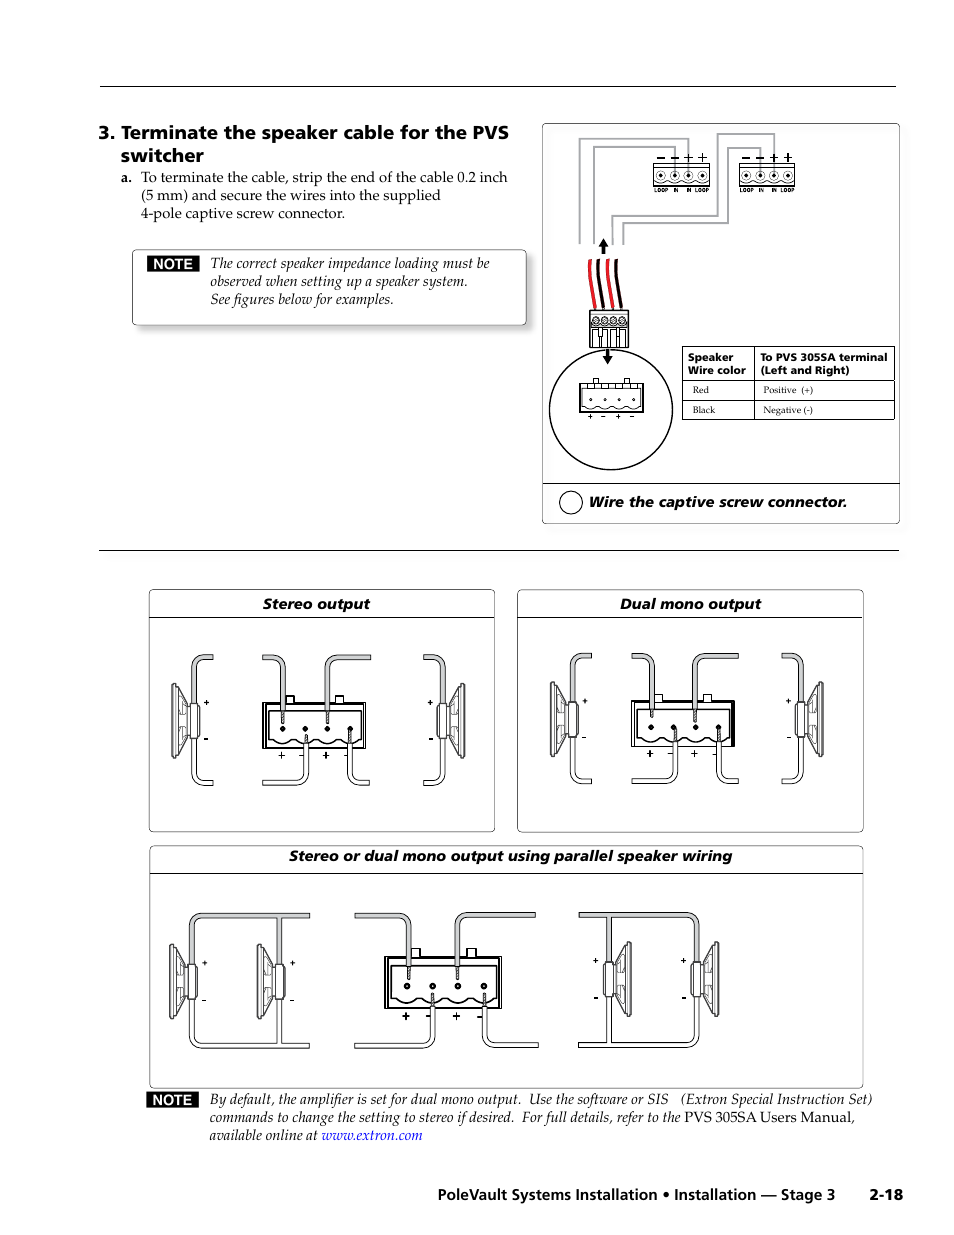 Terminate The Speaker Cable For Pvs Switcher Extron Wiring Diagrams 4 8 Ohm Speakers Electronics Polevault Systems 305sa User Manual Page 29 46